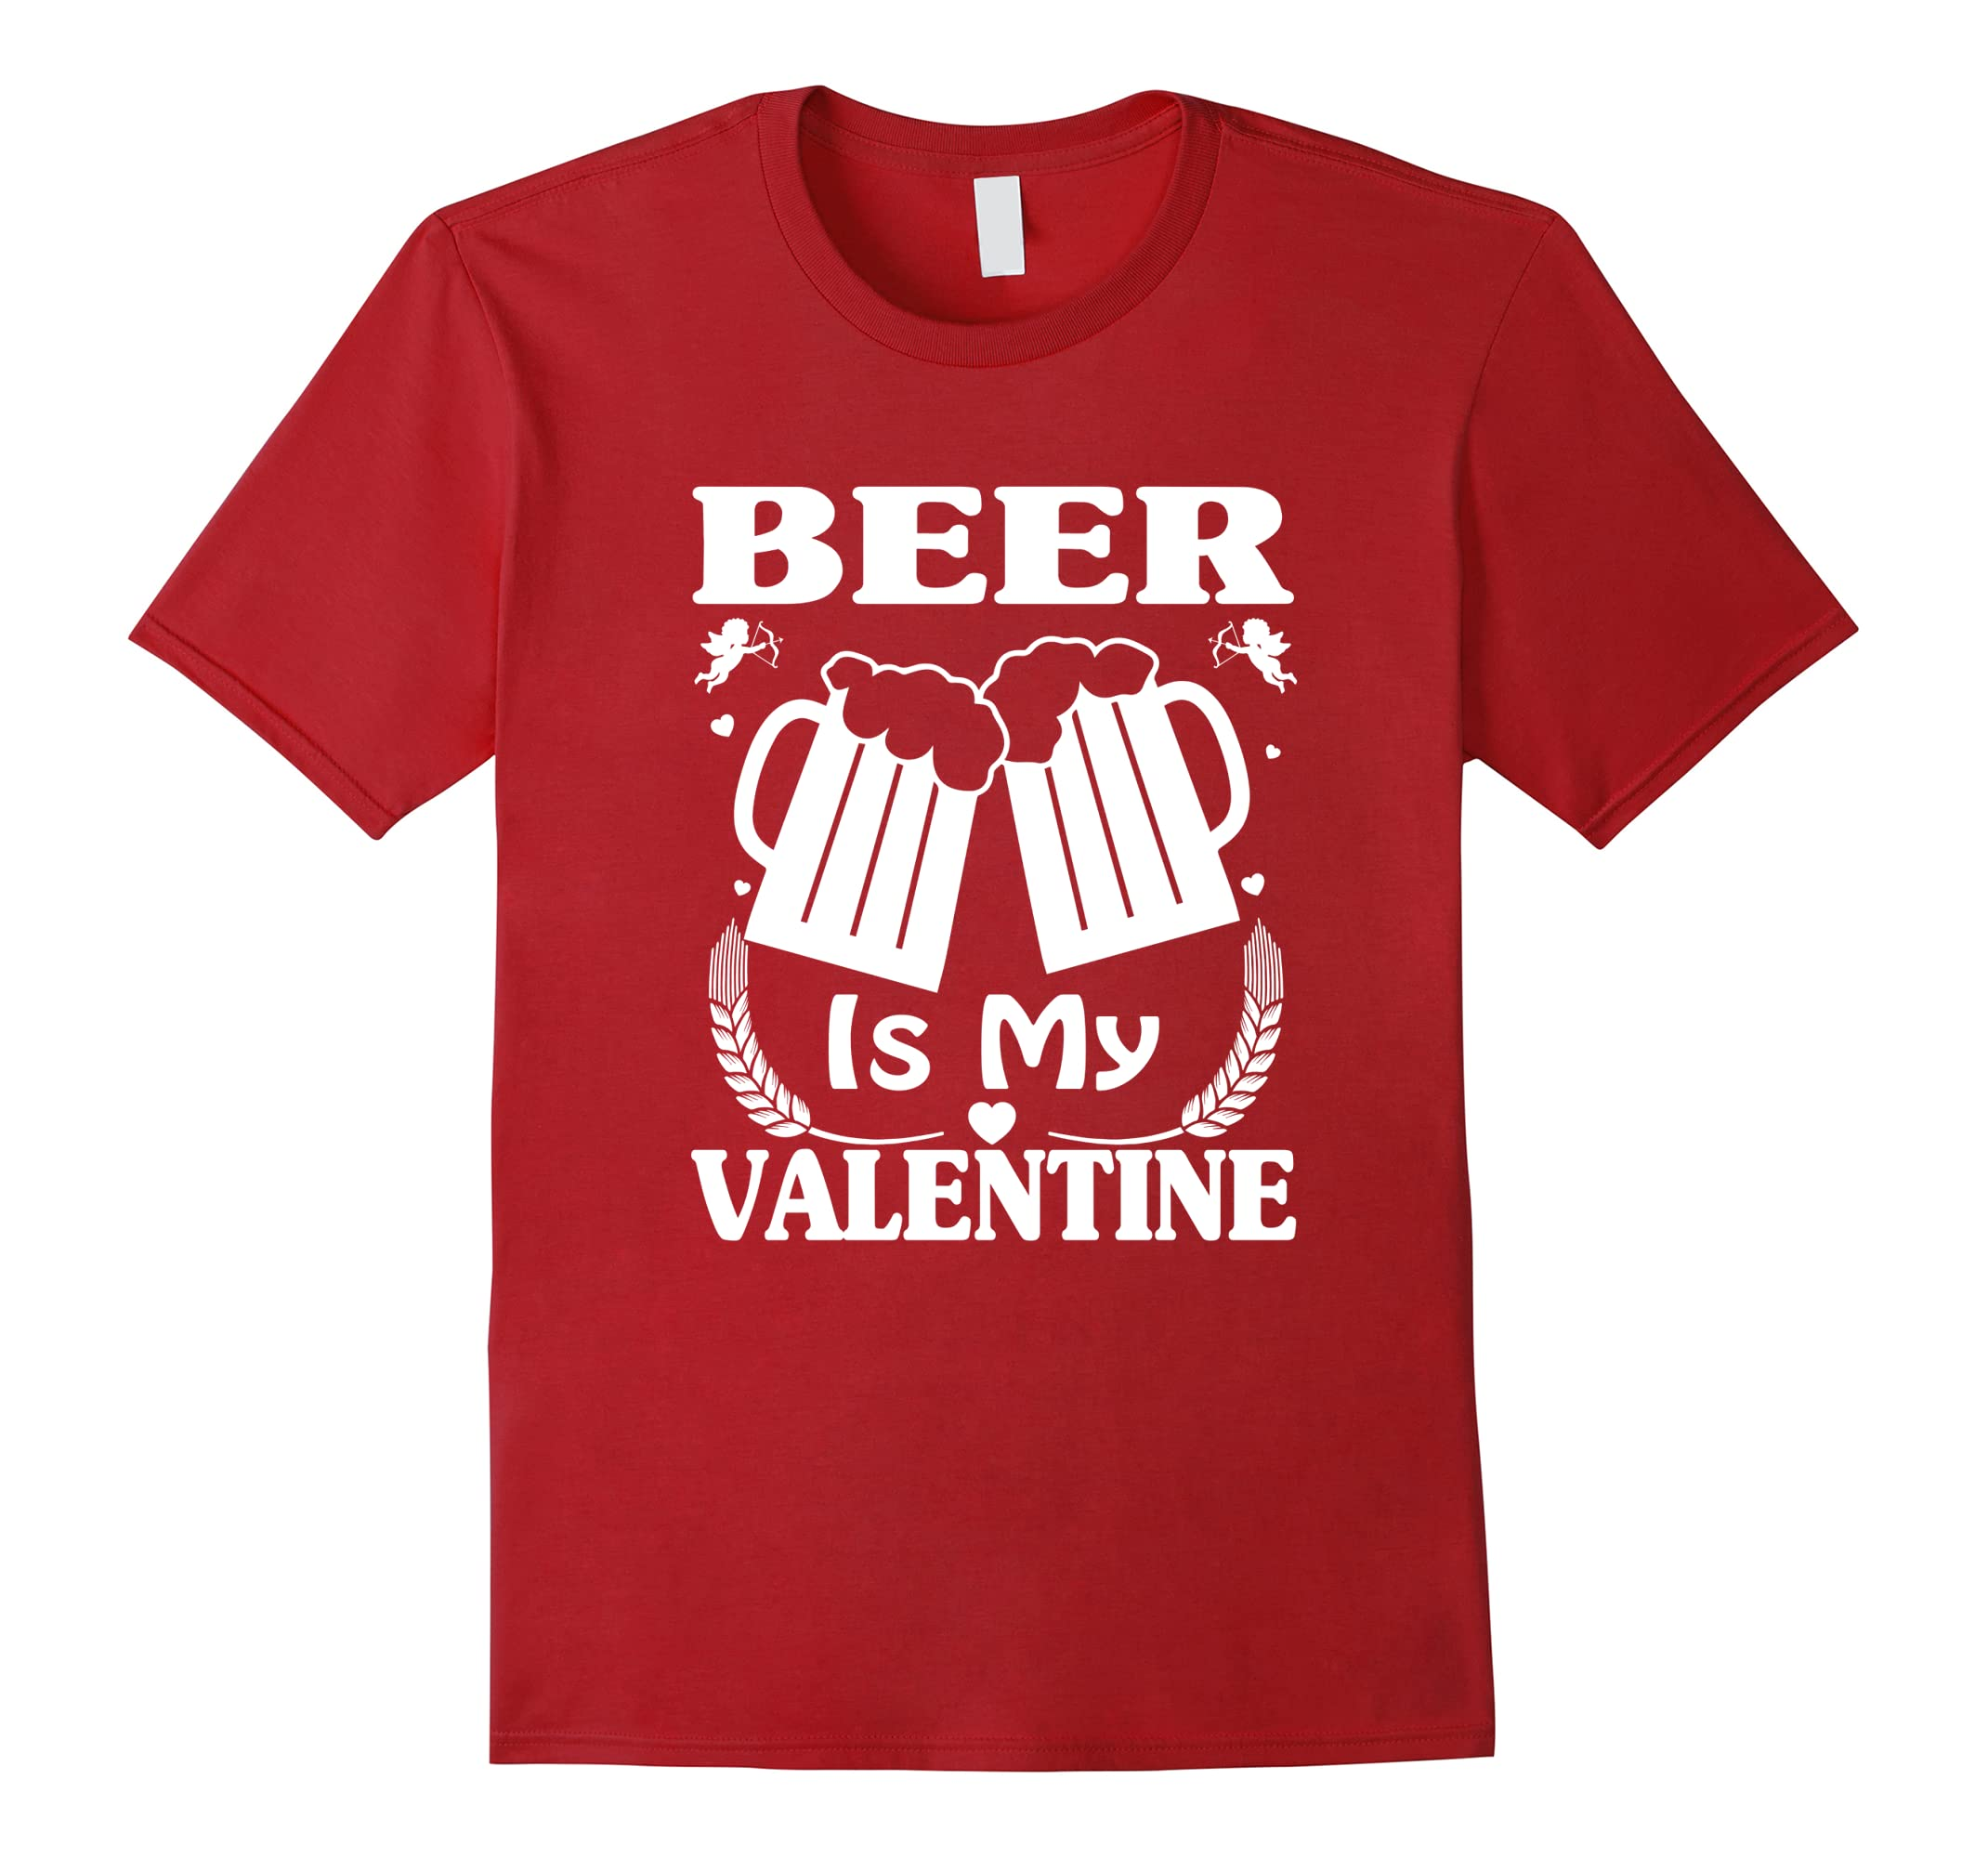 Beer Is My Valentine Cute Funny Anti Valentine S Day T Shirt Ah My